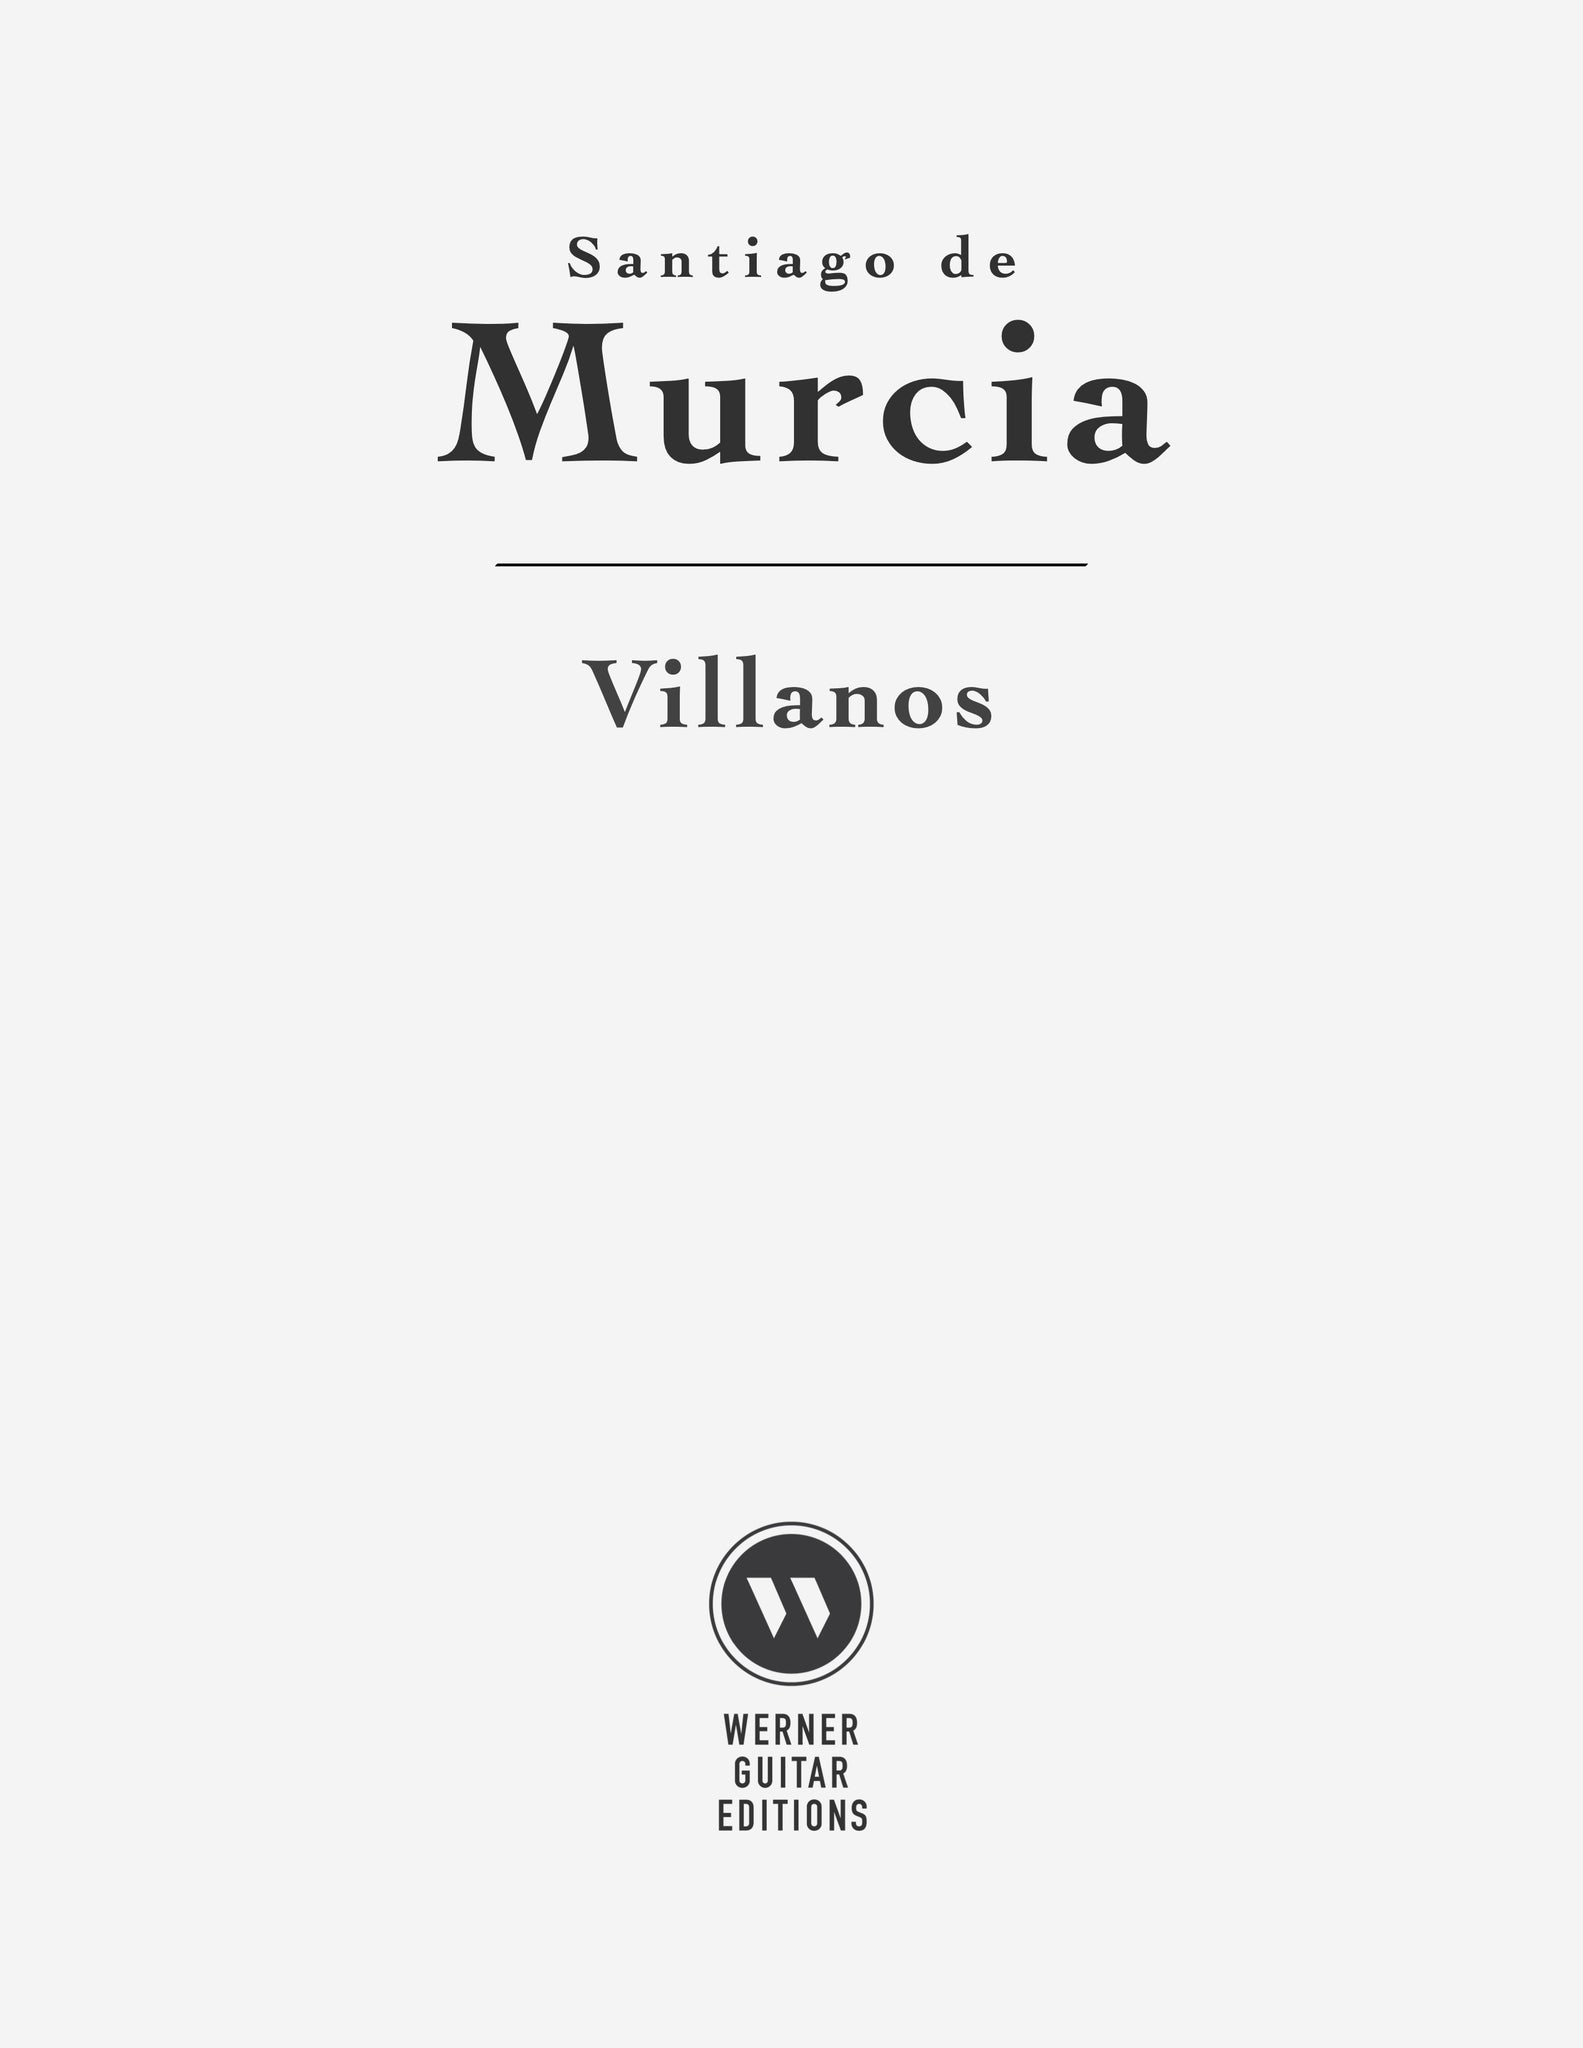 Villanos by Santiago de Murcia (PDF Sheet Music and Tab)